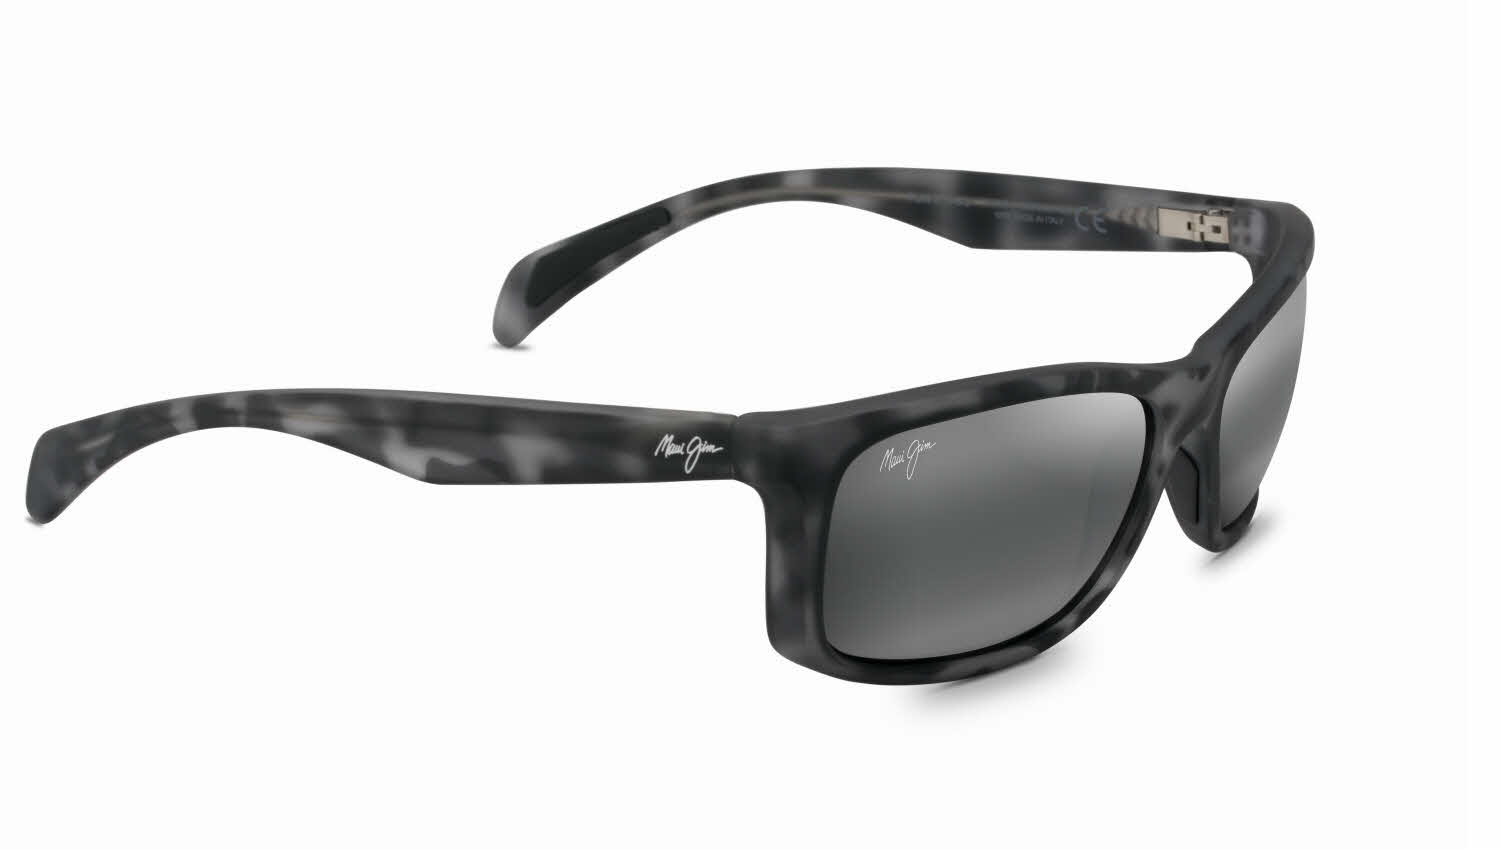 c7495c475b Maui Jim Puhi-785 Sunglasses